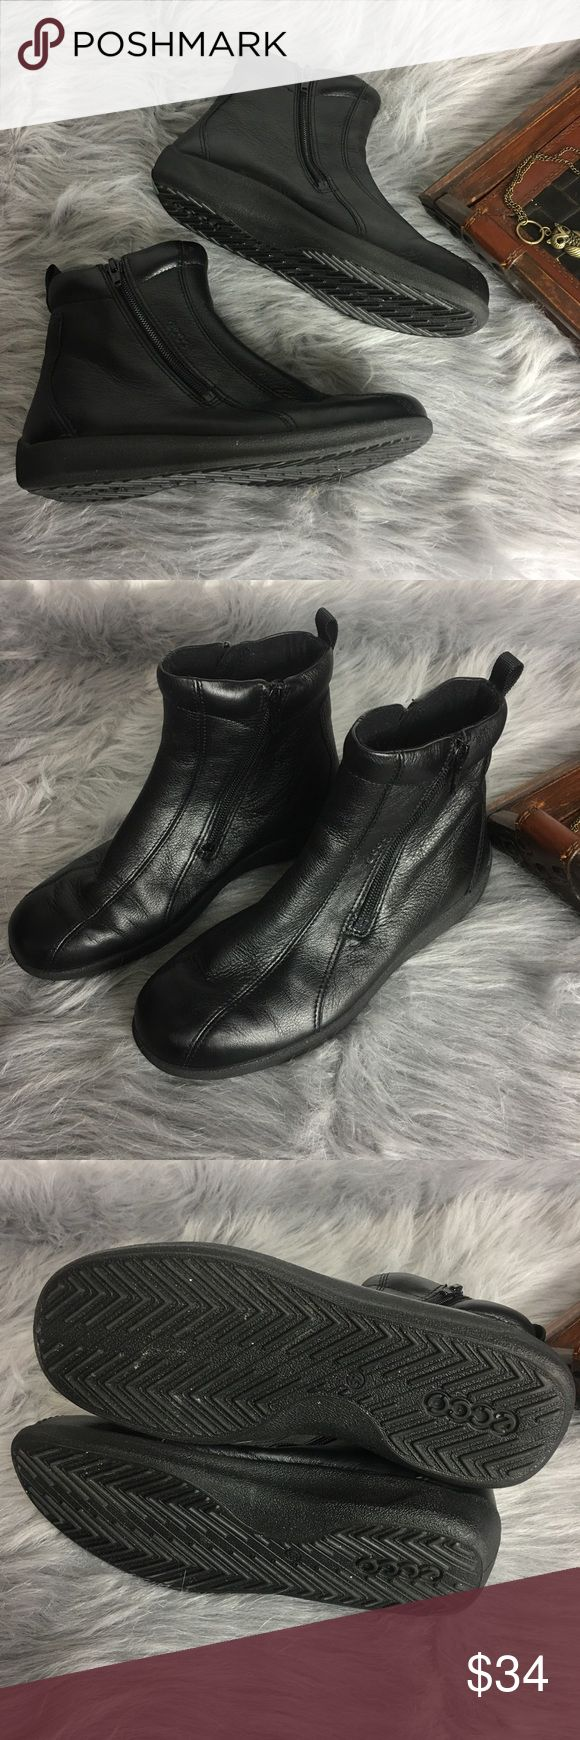 ECCO Black Short Ankle Side Zip Boots Euro Sz 37 ECCO Black Short Ankle Side Zip Boots Euro Sz 37 US Sz 7  Nice pre-owned condition. Some small scuffs at toe. No other flaws.    SH-TA Ecco Shoes Ankle Boots & Booties